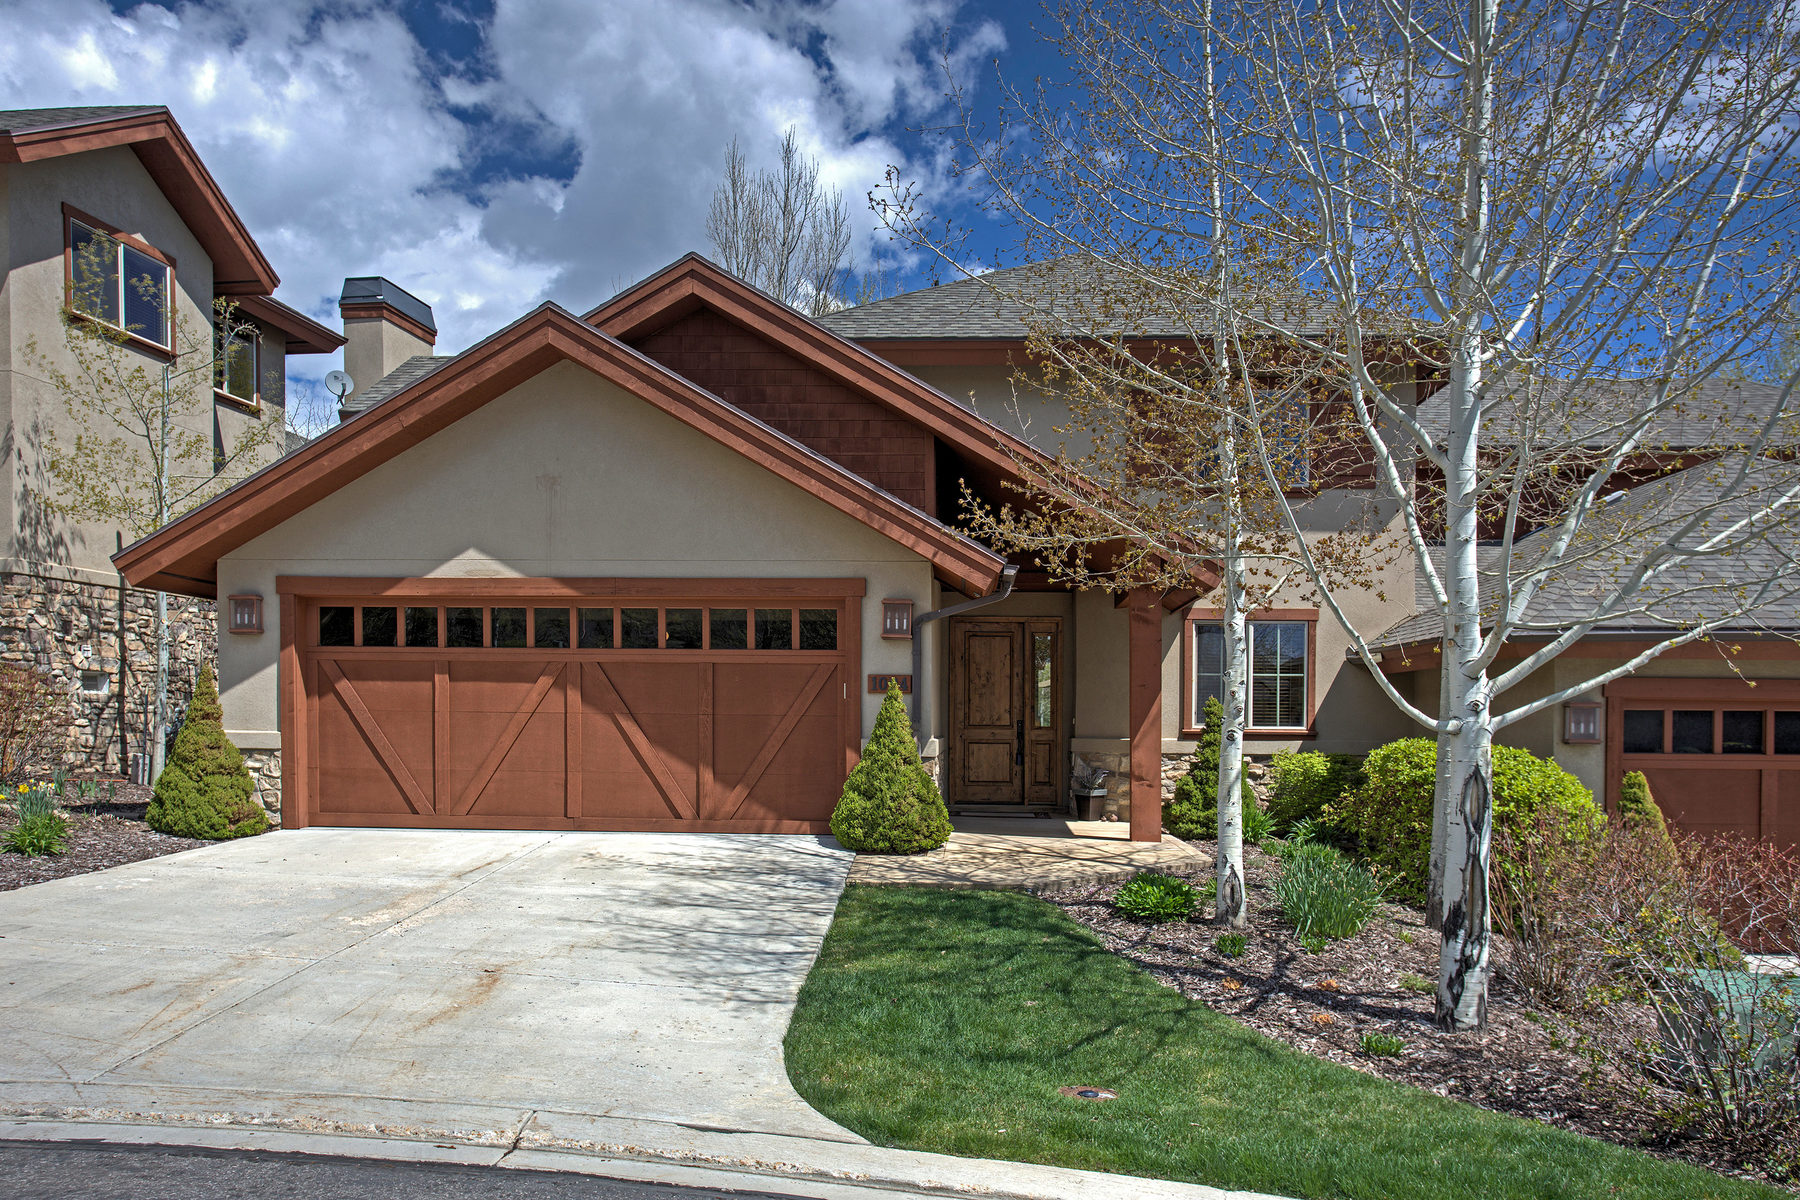 Single Family Home for Sale at Golf Course Leisure Living 1094 N Turnberry Ct Midway, Utah, 84049 United States